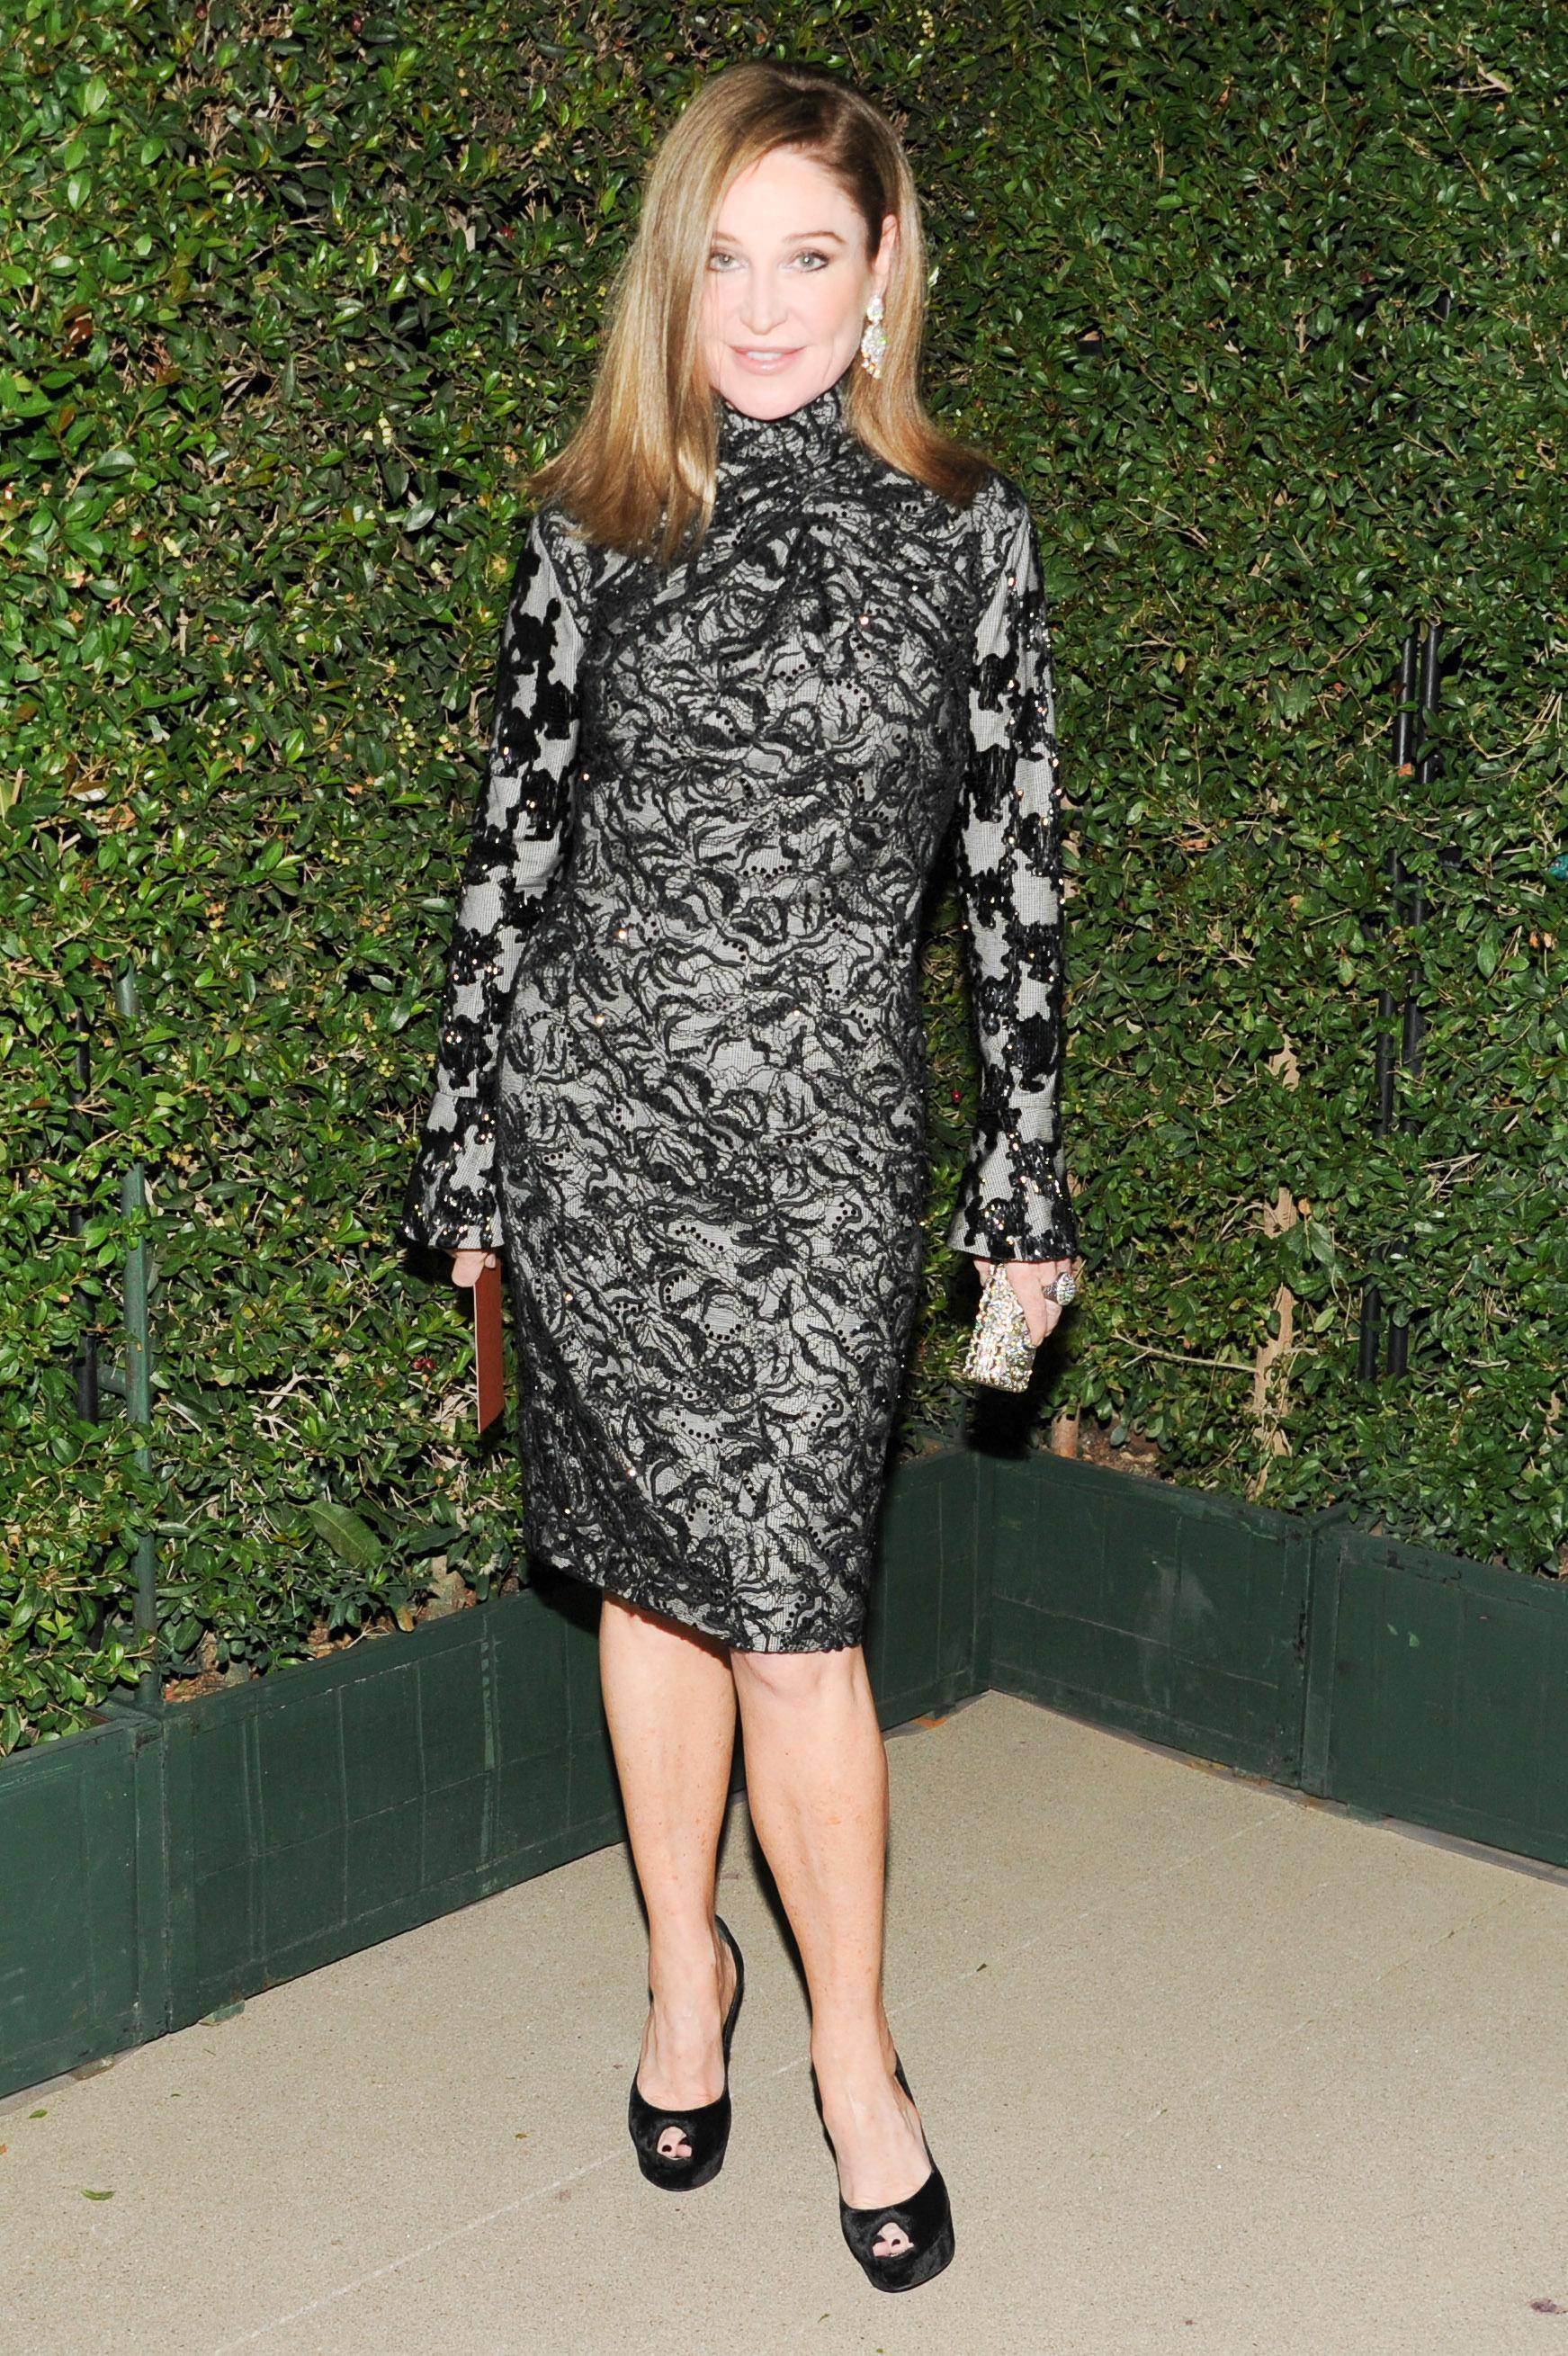 SALVATORE FERRAGAMO Sponsors the Inaugural Gala of the WALLIS ANNENBERG CENTER FOR THE PERFORMING ARTS